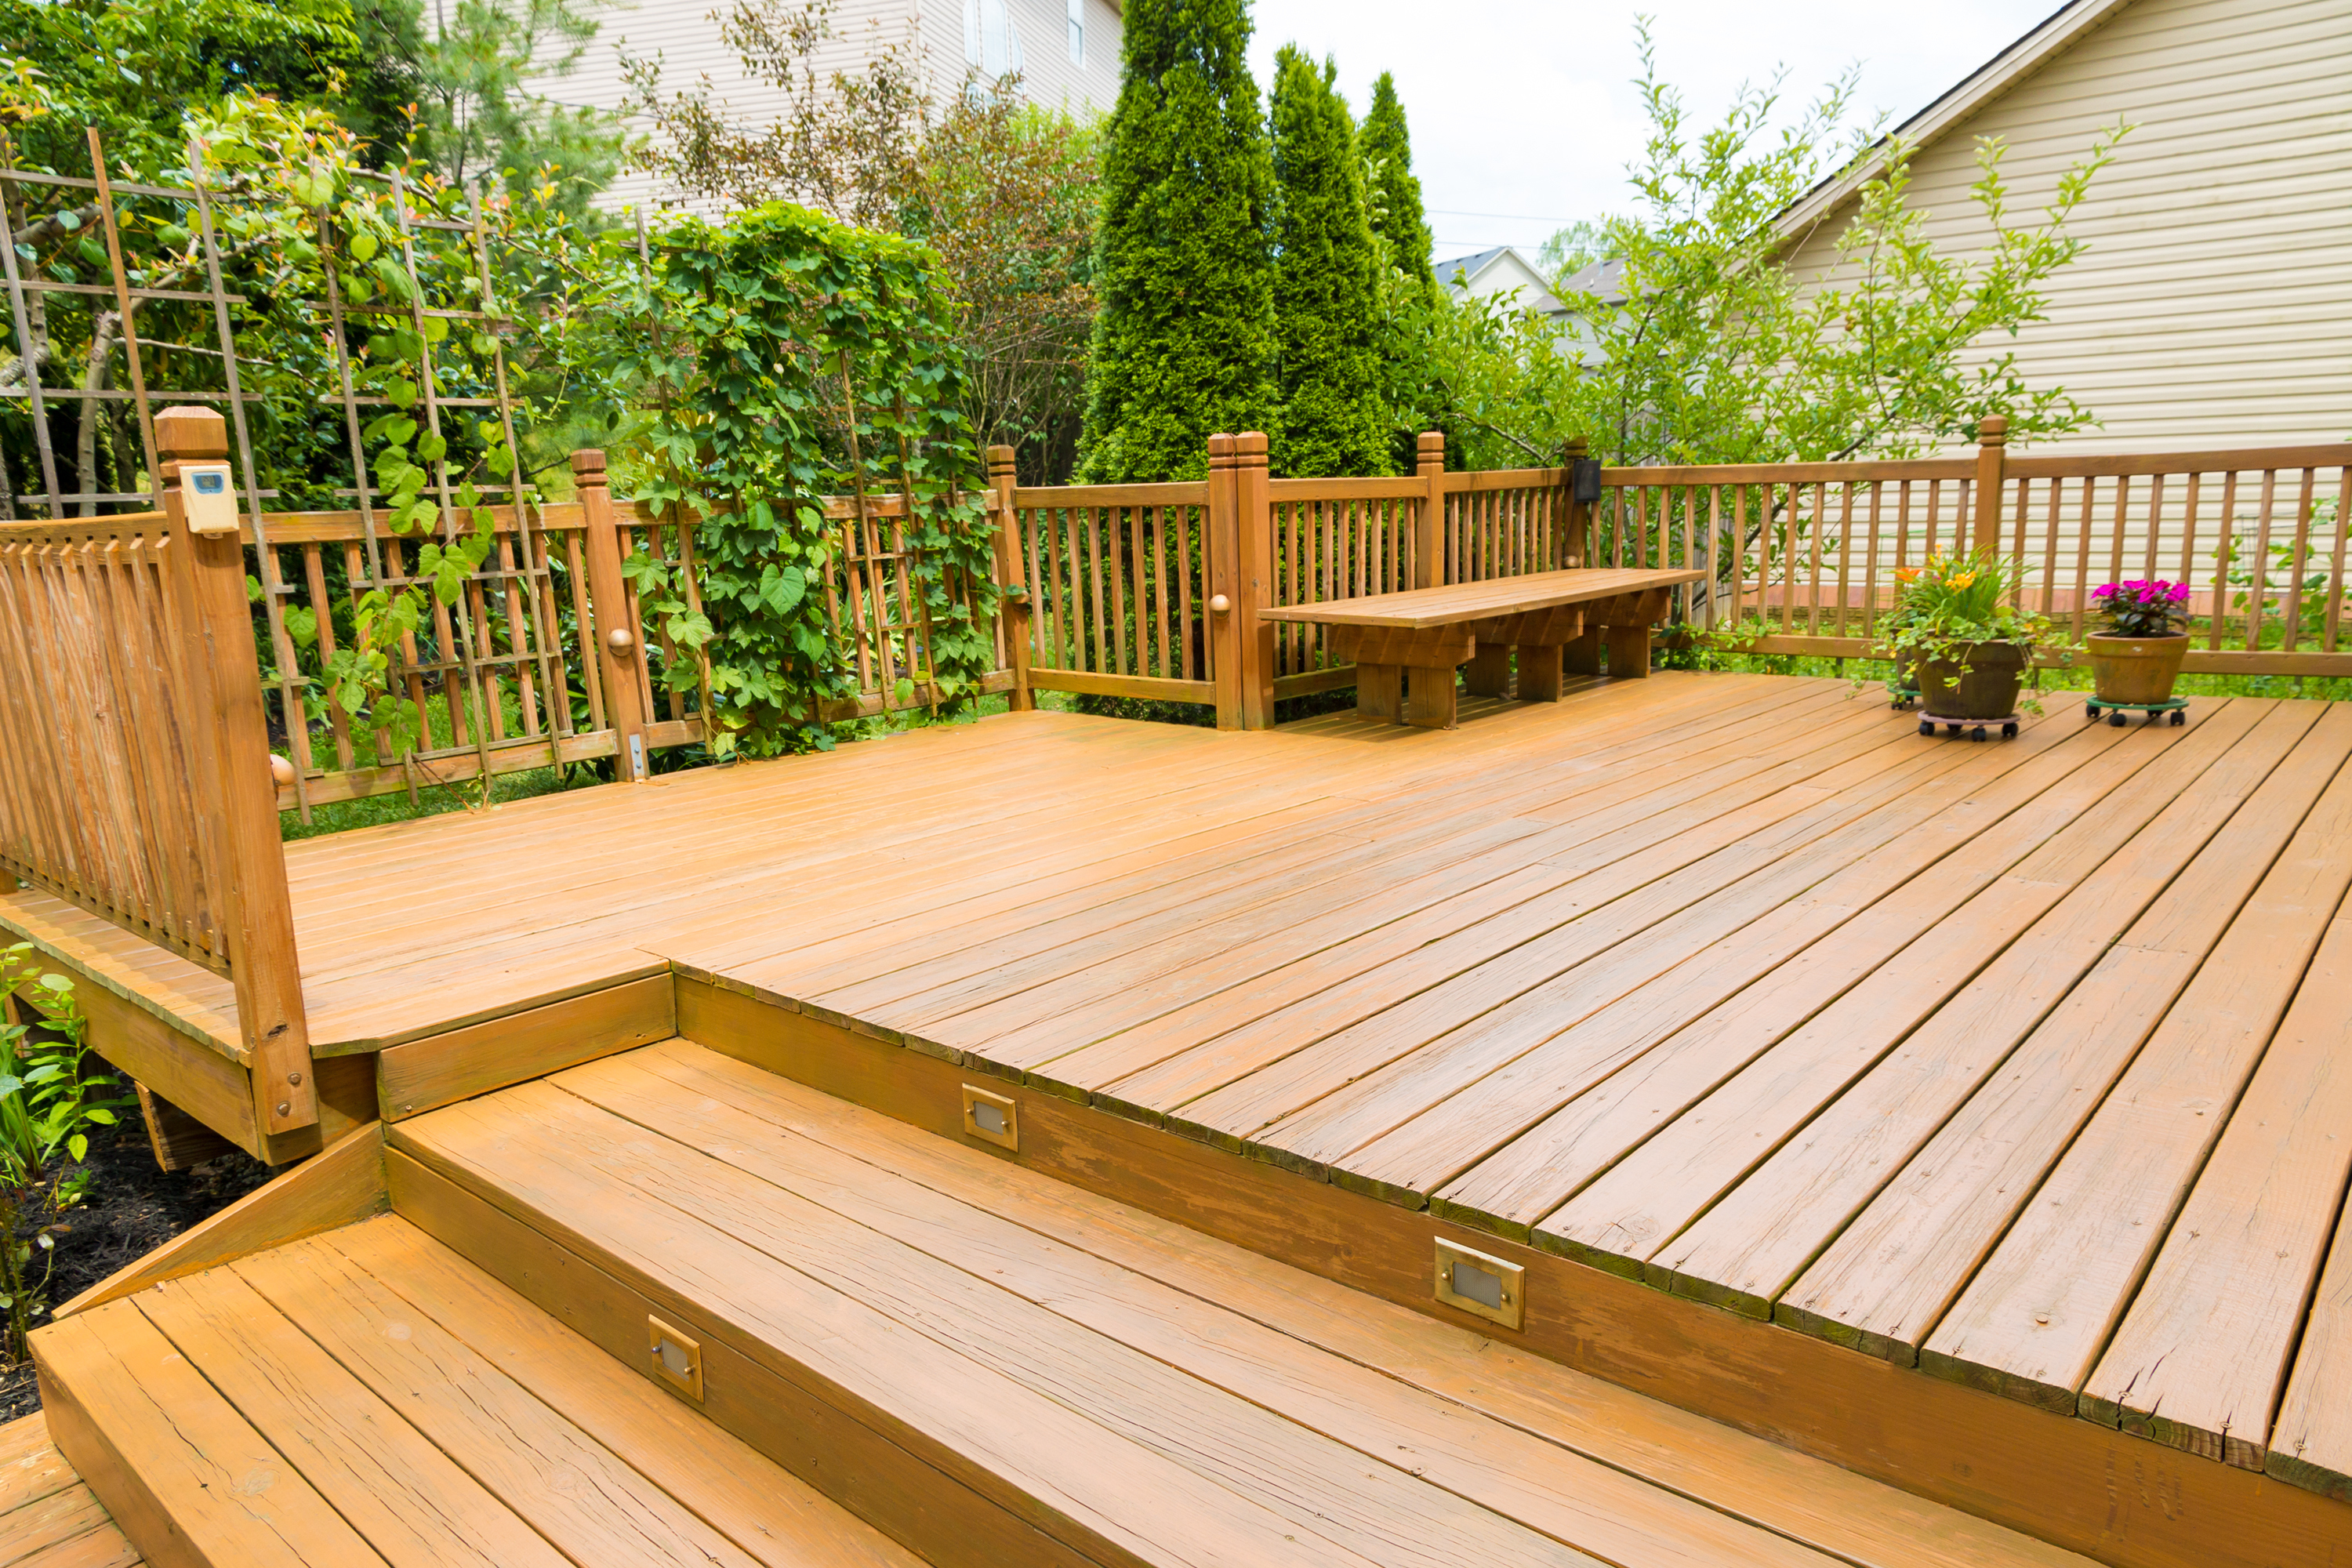 The Average Cost for a 2nd Story Deck | Home Guides | SF Gate